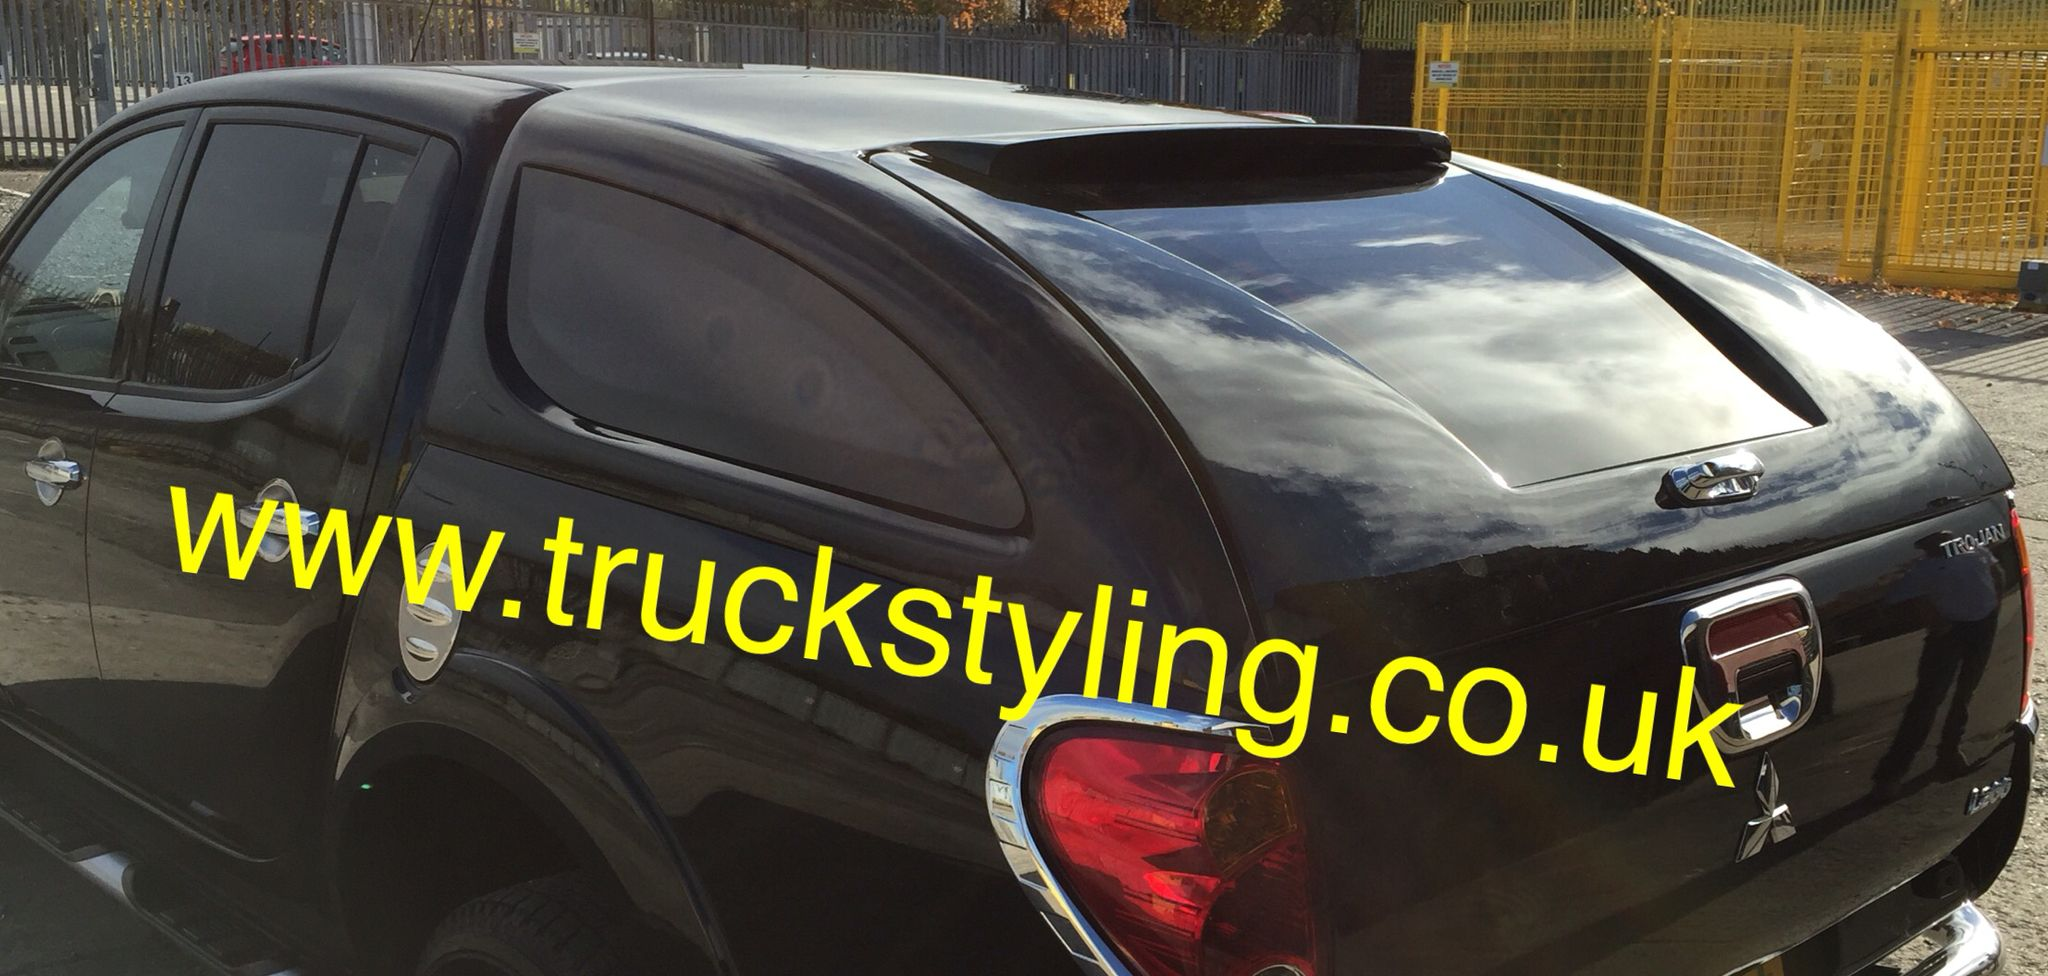 This Is The Sloping Hard Top Canopy For Short Bed Mitsubishi L200 2006 2015 Models Free Fitting From CH41 3QZ Wirral Merseyside